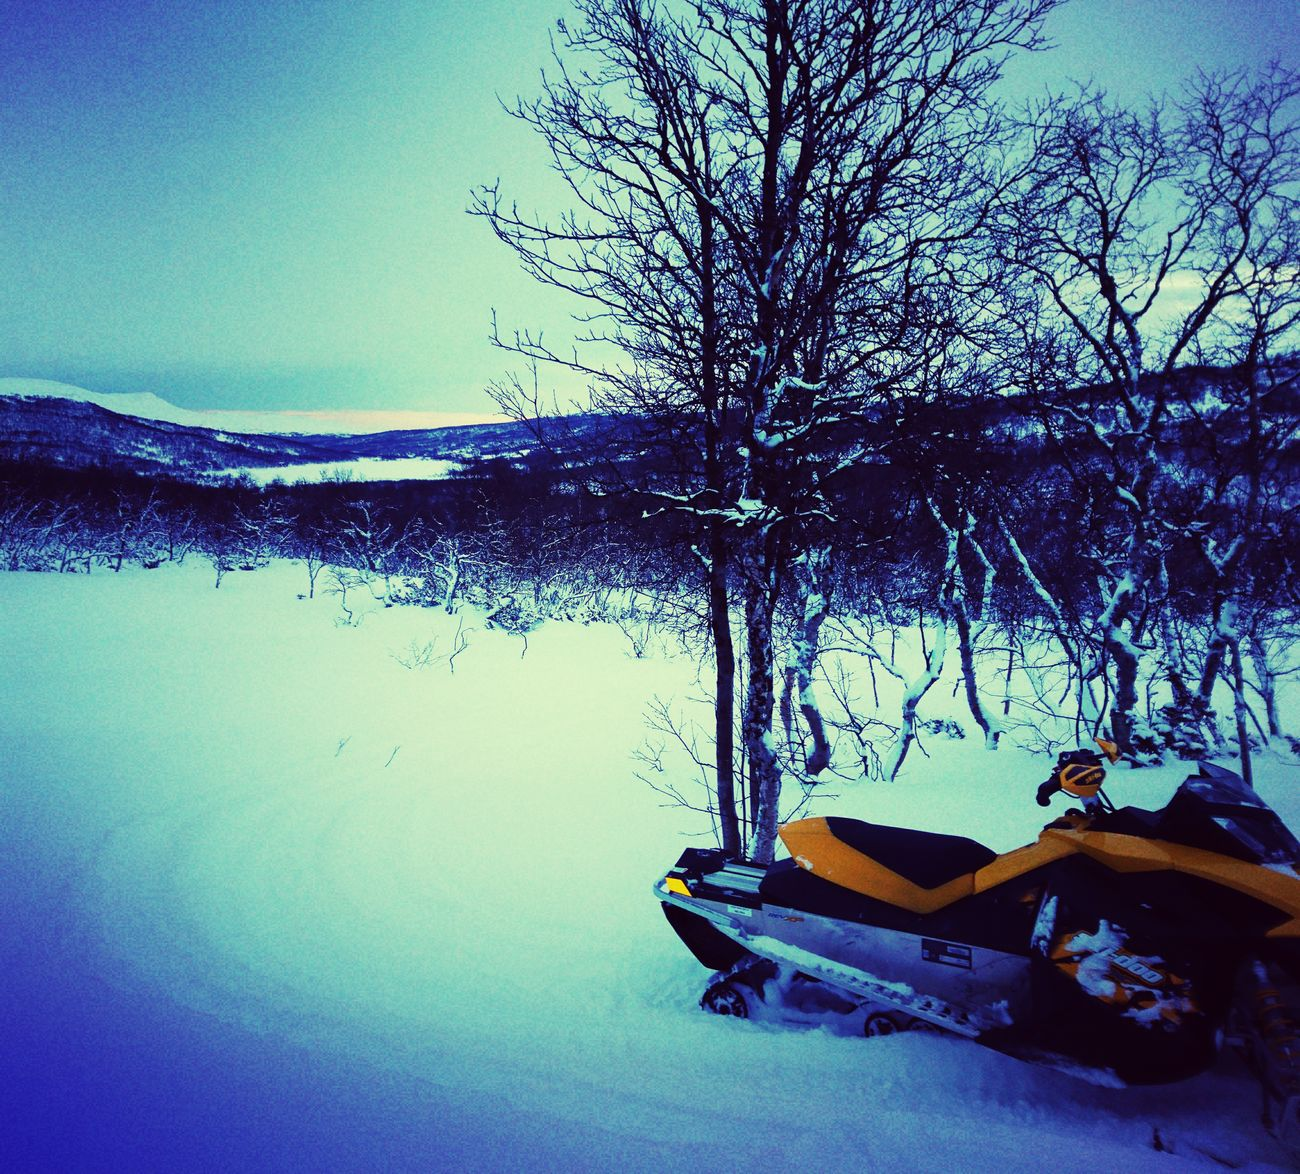 Kesudalen Snow View Sky Day Nature Scooter Yellow My Toy 😊 Mountains Frozen Lake